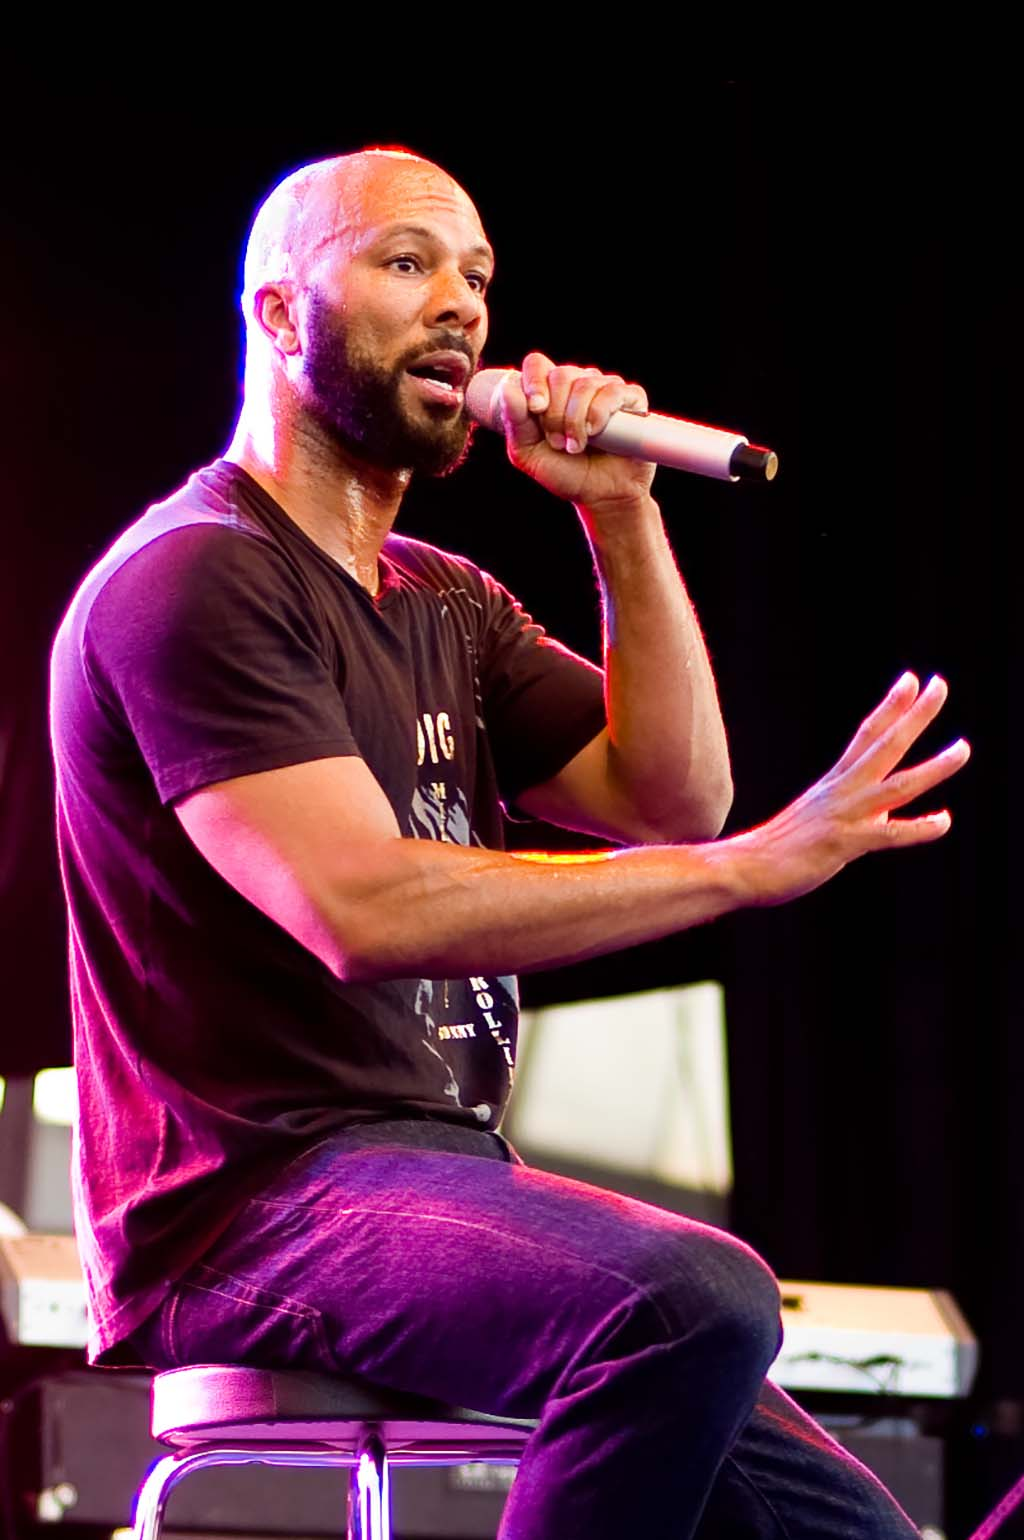 Man with beard talking in microphone while sitting on stool. Motioning with his hand. Purple backlighting.